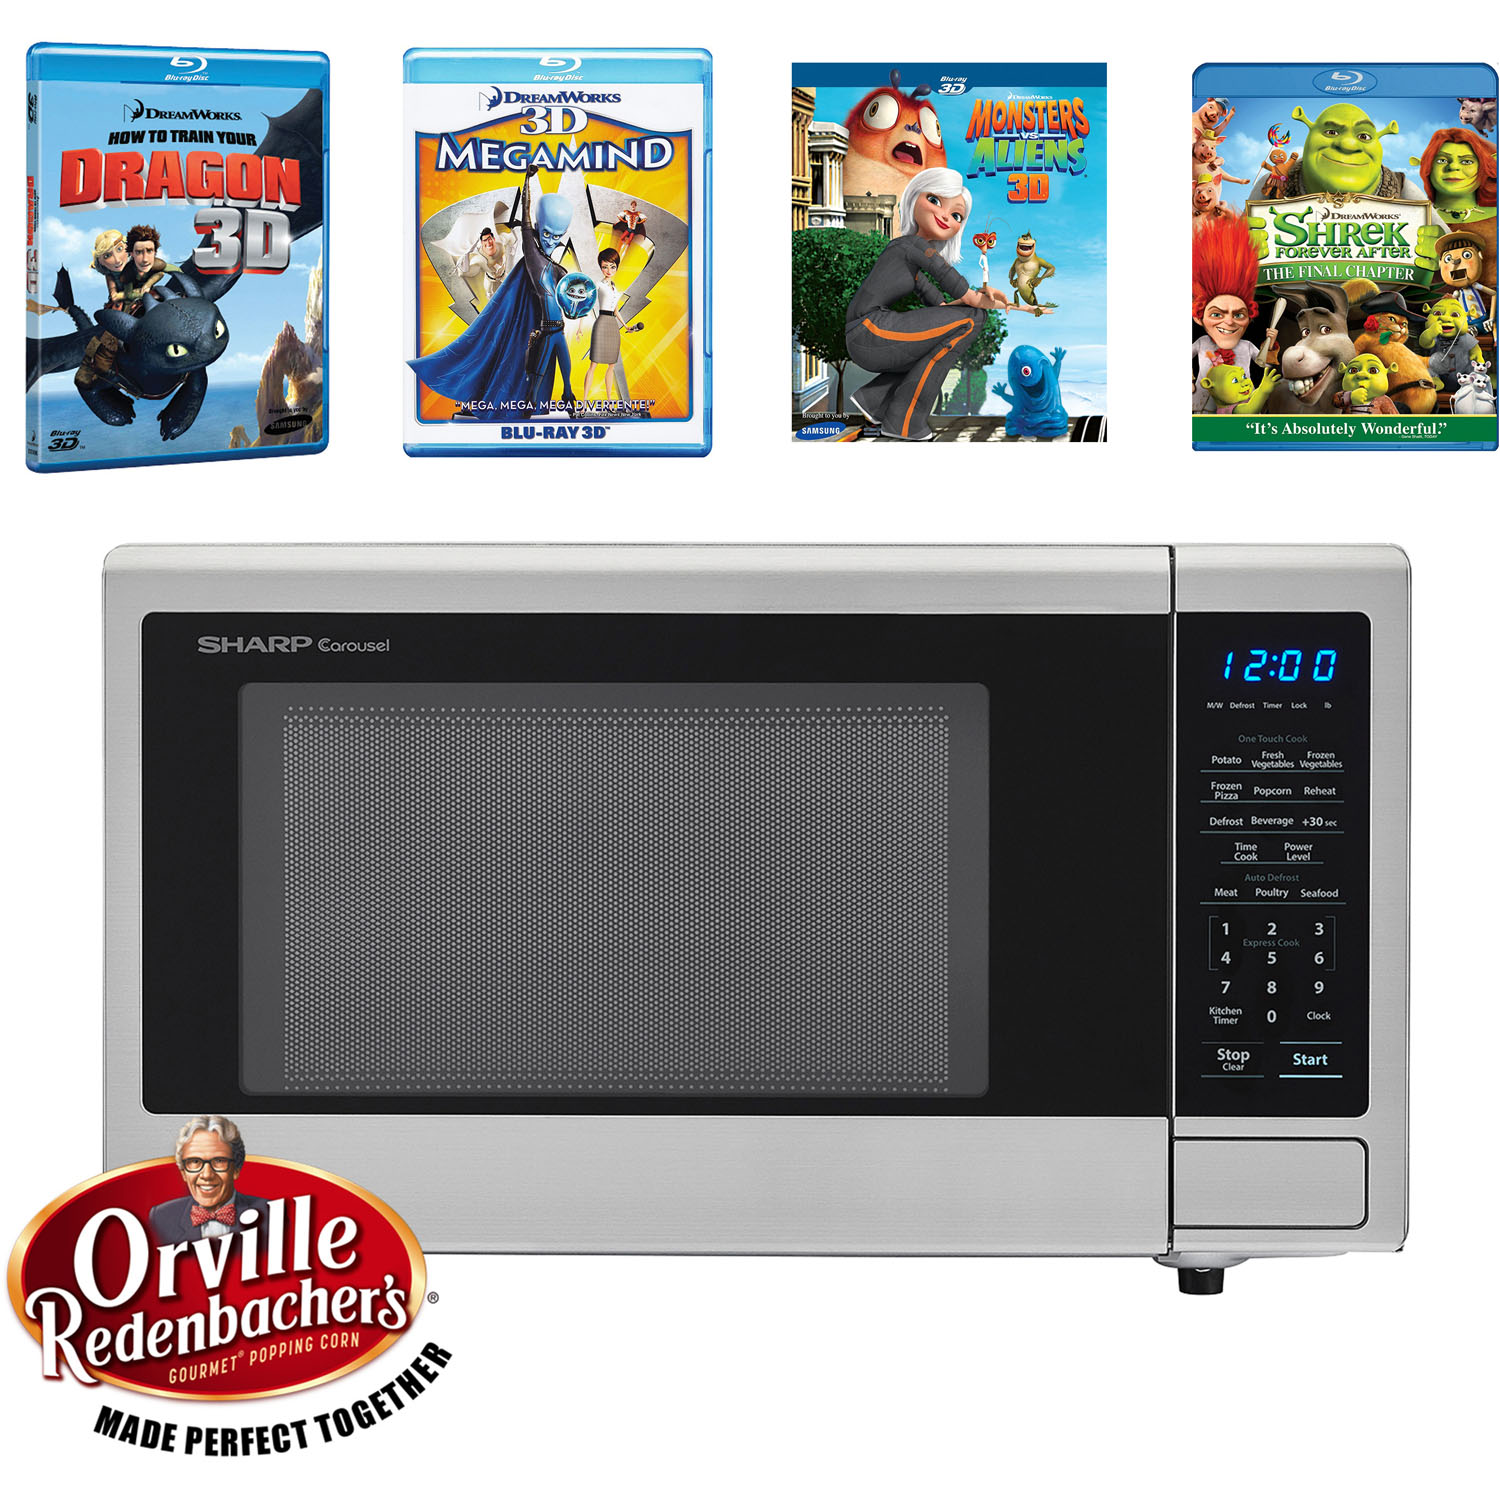 SHARP's Movie Night with Orville Redenbacher's Certified 1.1 cu. ft. Carousel Microwave Oven and 4 Blu-ray 3D Movies